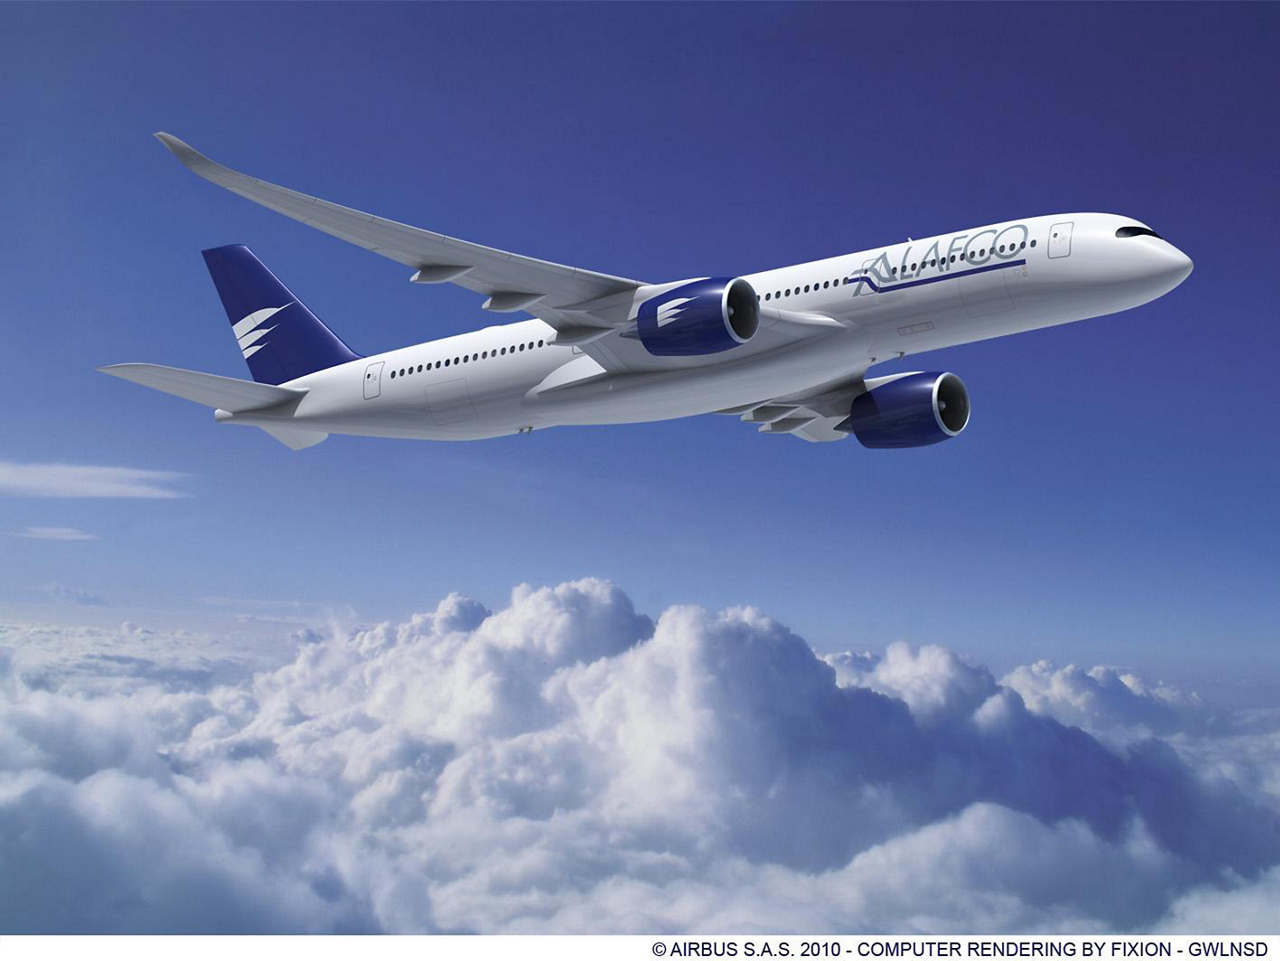 ALAFCO has signed an agreement for six more Airbus A350 XWB aircraft. This repeat order brings ALAFCO's  total order for the A350-900 to 18 aircraft (22 June 2011)